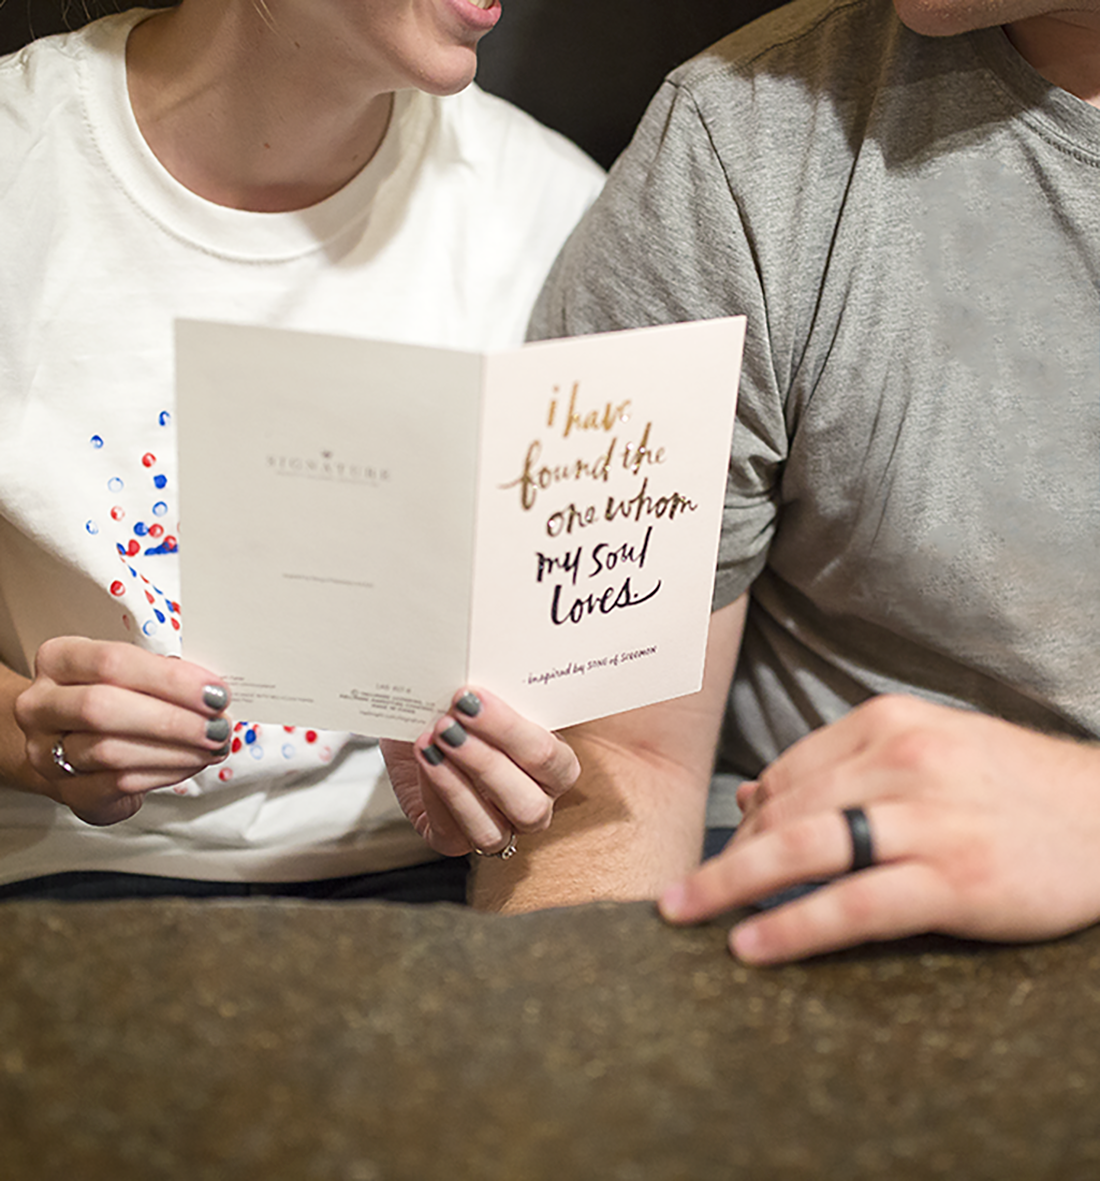 Our Favorite Way To Celebrate Love Quality Time